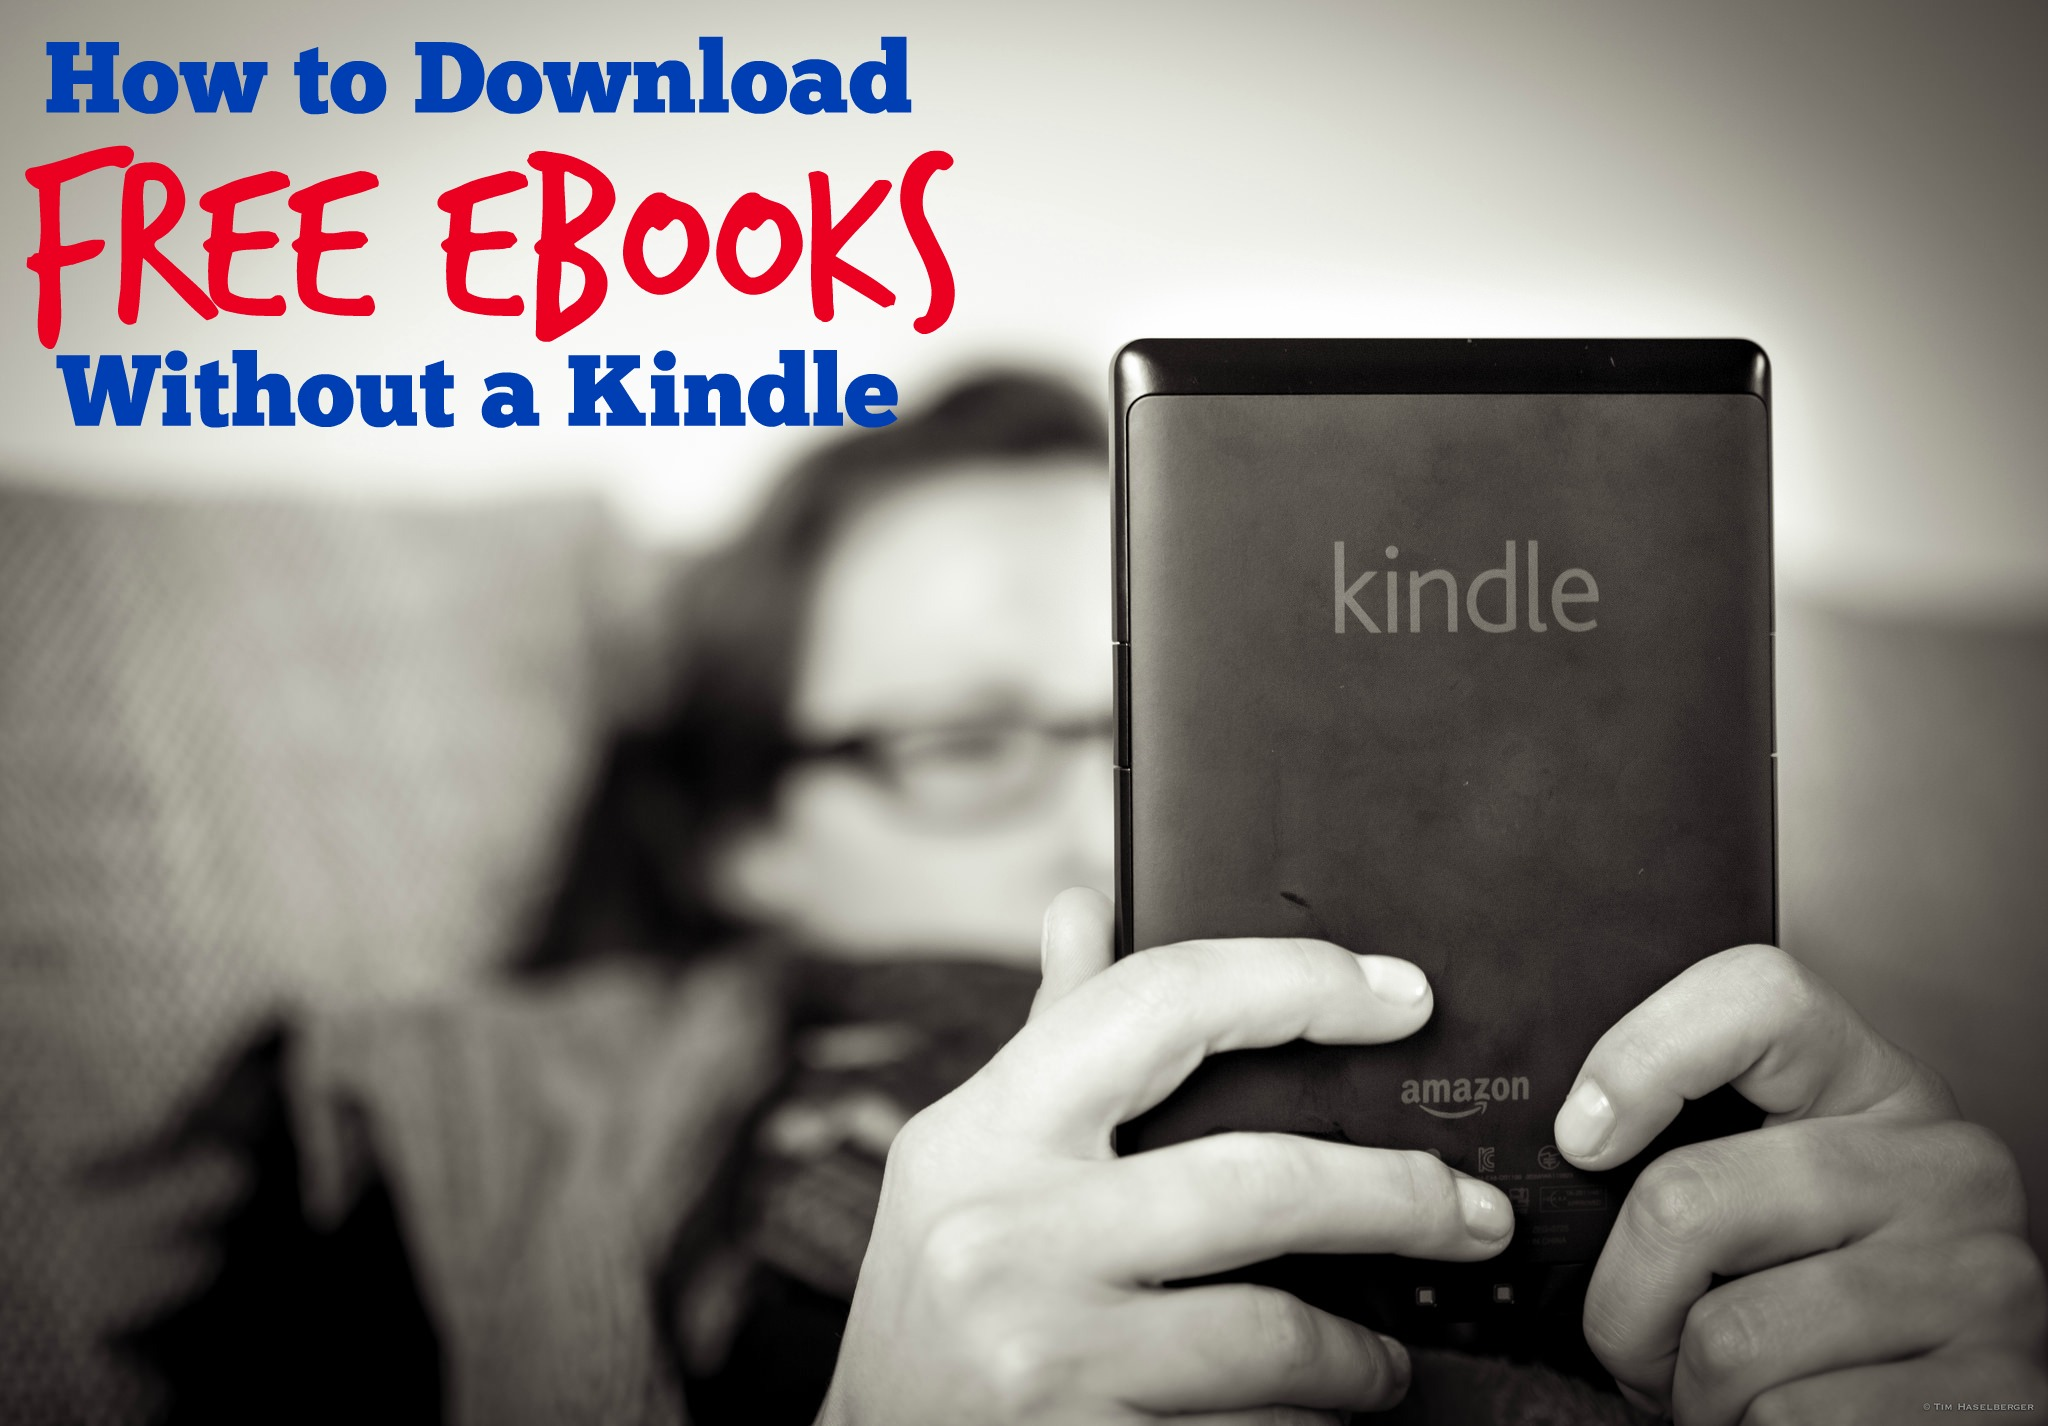 How to Download Free Ebooks Without a Kindle